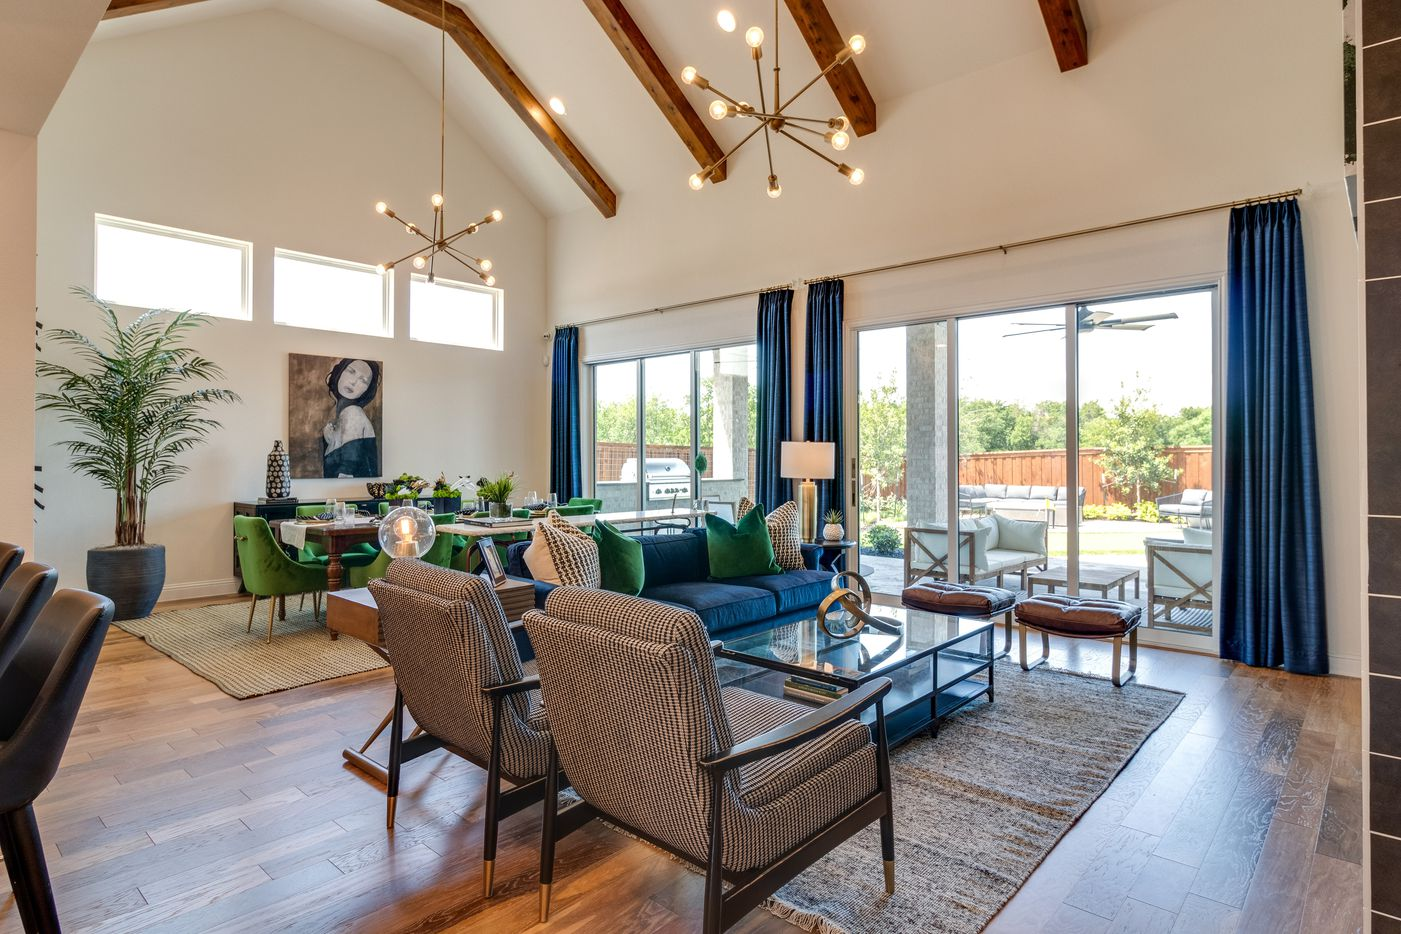 Drees Custom Homes' new models in the Viridian development start near $470,000.